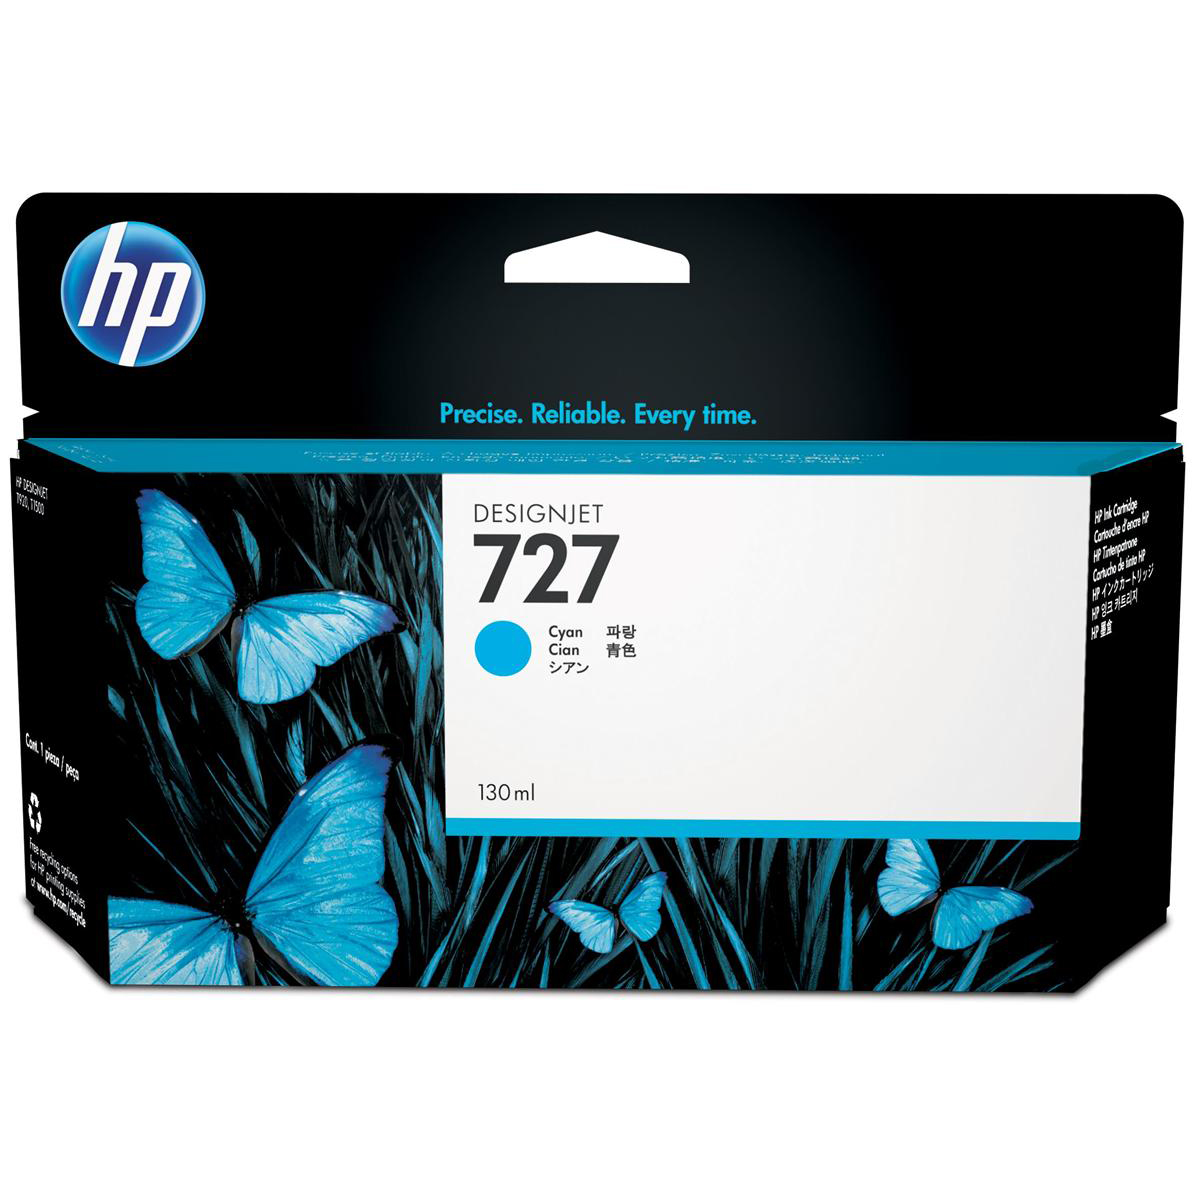 Hewlett Packard [HP] No. 727 Designjet Inkjet Cartridge 130ml Cyan Ref B3P19A